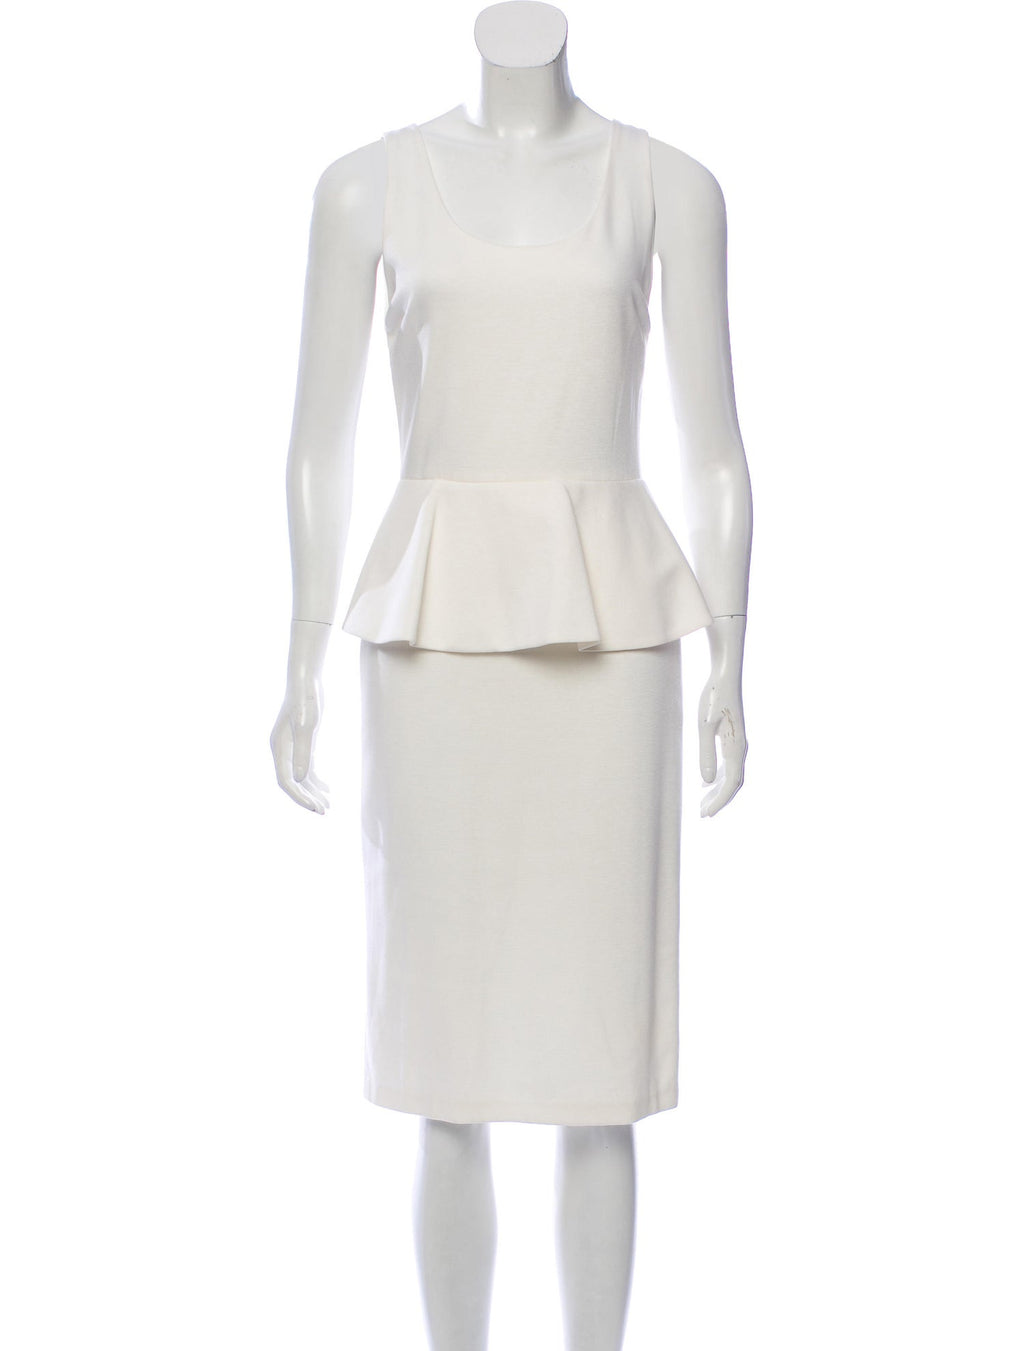 Alice and Olivia 'Isaac' Peplum Dress